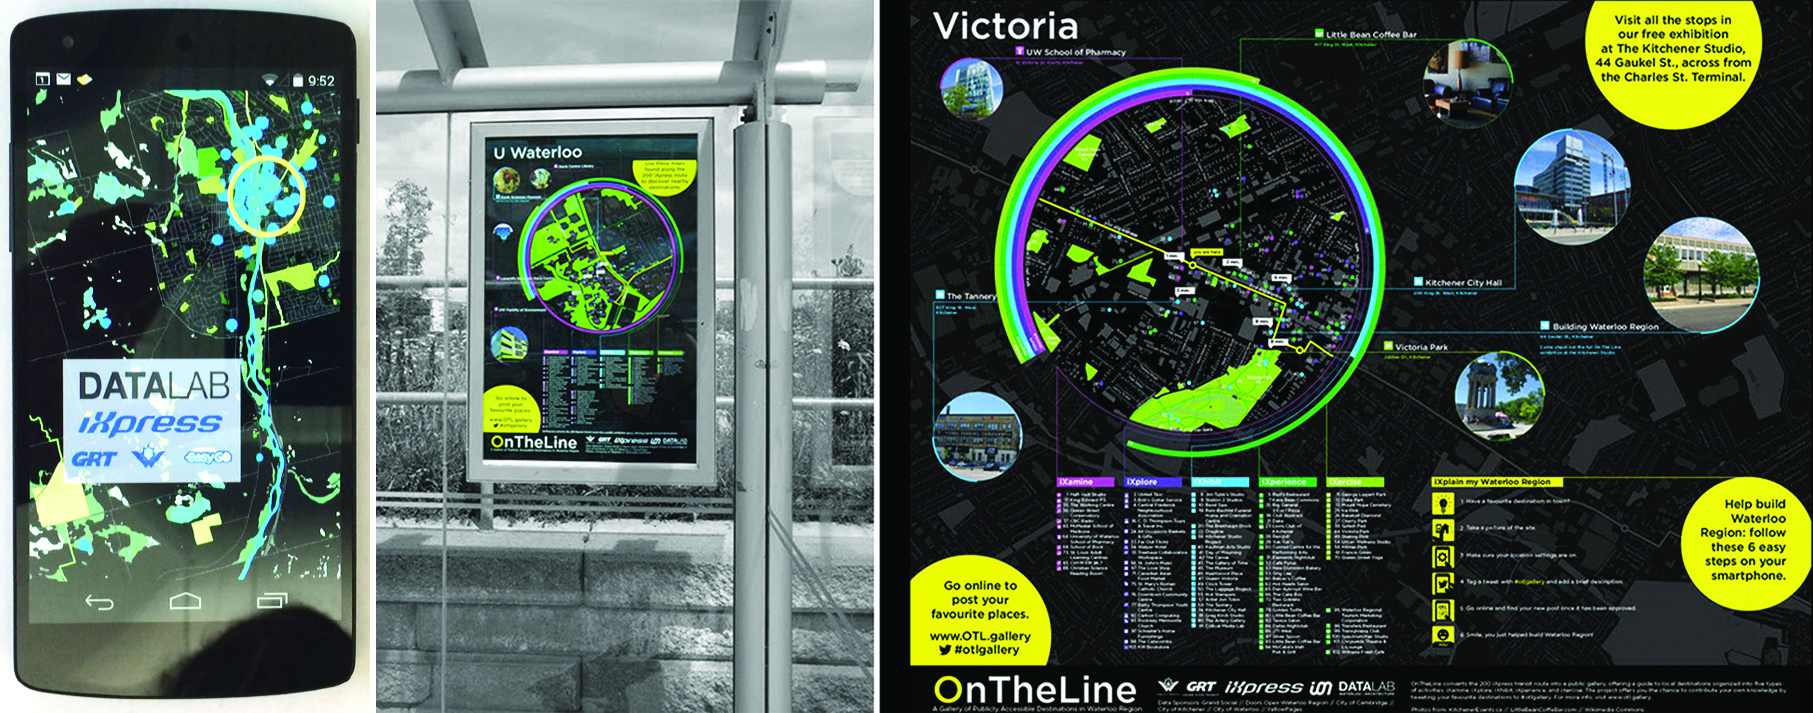 (Left)   OnTheLine.    The project offers a comprehensive framework for enabling the city as a site of participation, thereby offering a mechanism by which to sense the city and enable its strategic development and management. Project and images by DATAlab, School of Architecture, University of Waterloo  (Right)   OnTheLine's Datascape.  Two primary data streams, curated and emergent, are combined into a suite of physical installations and digital interfaces